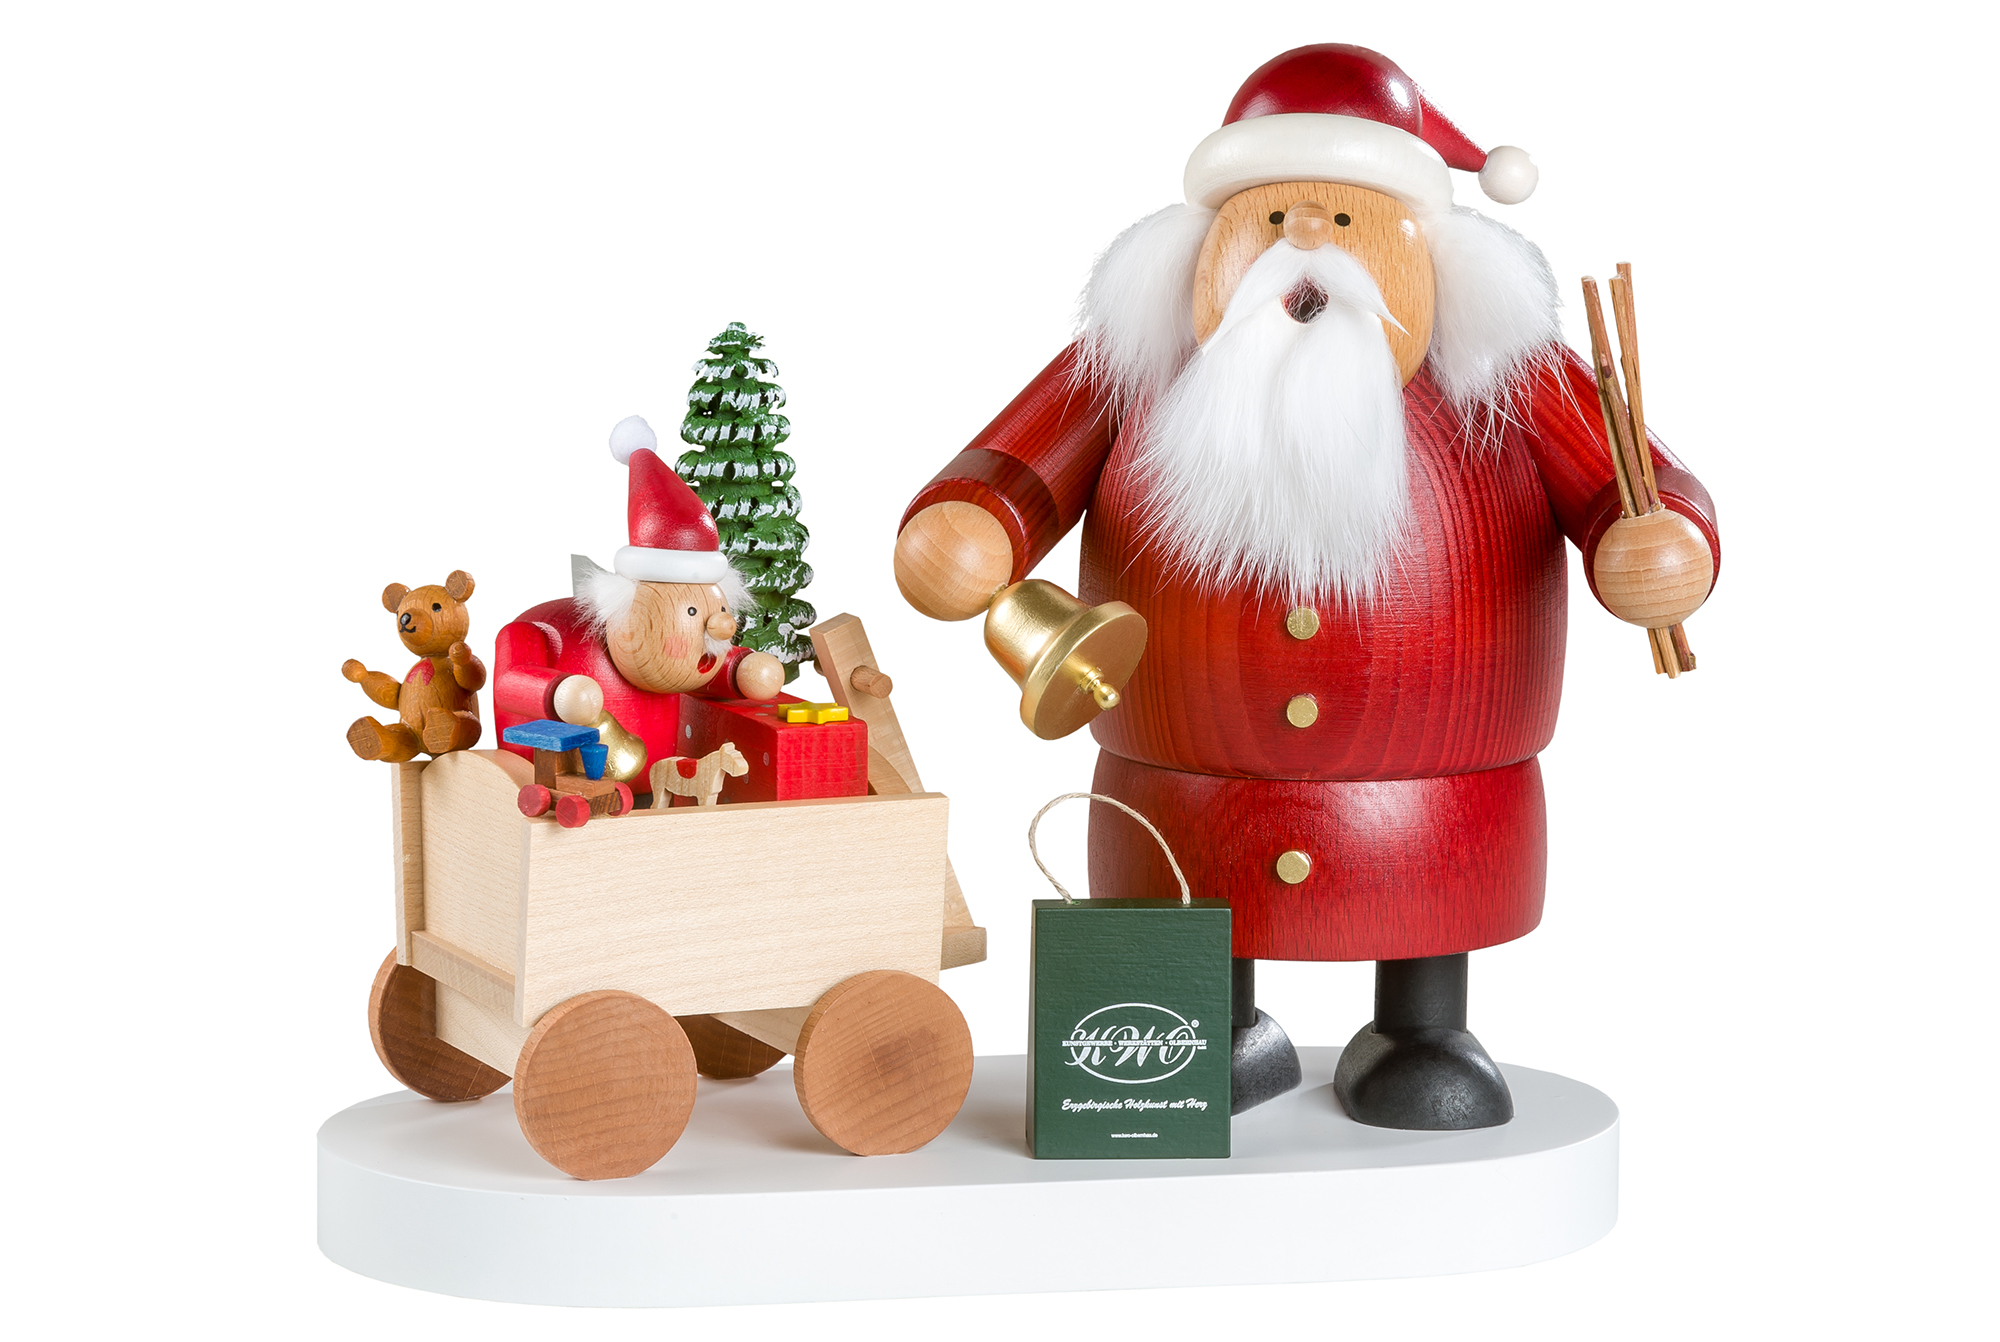 Santa Claus Smoker with Little One – 8″